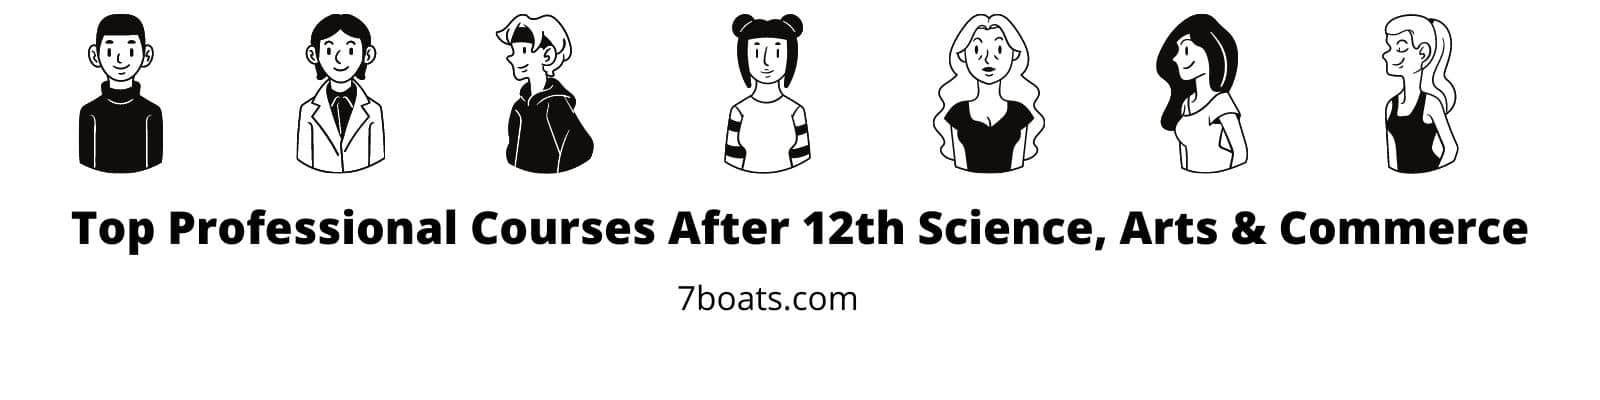 Top Professional Courses After 12th Science, Arts & Commerce - 7boats